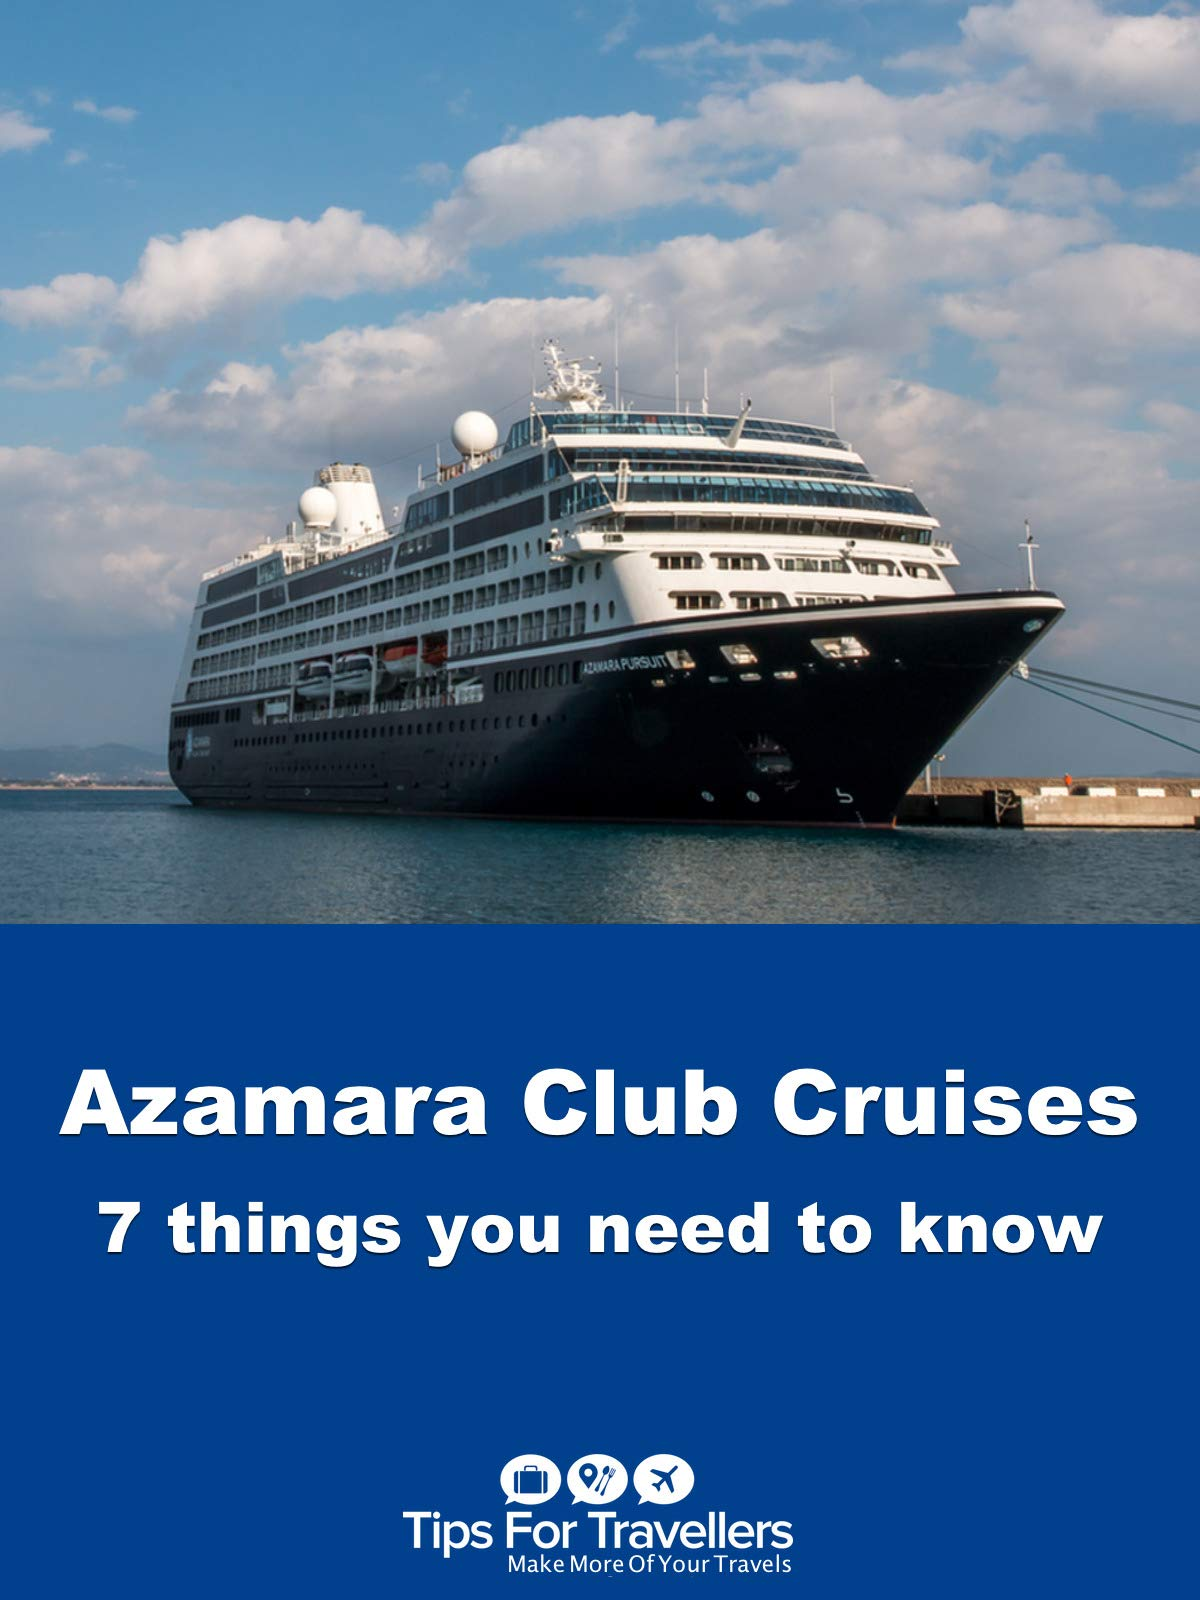 Clip: Azamara Club Cruises. 7 Things You Need To Know